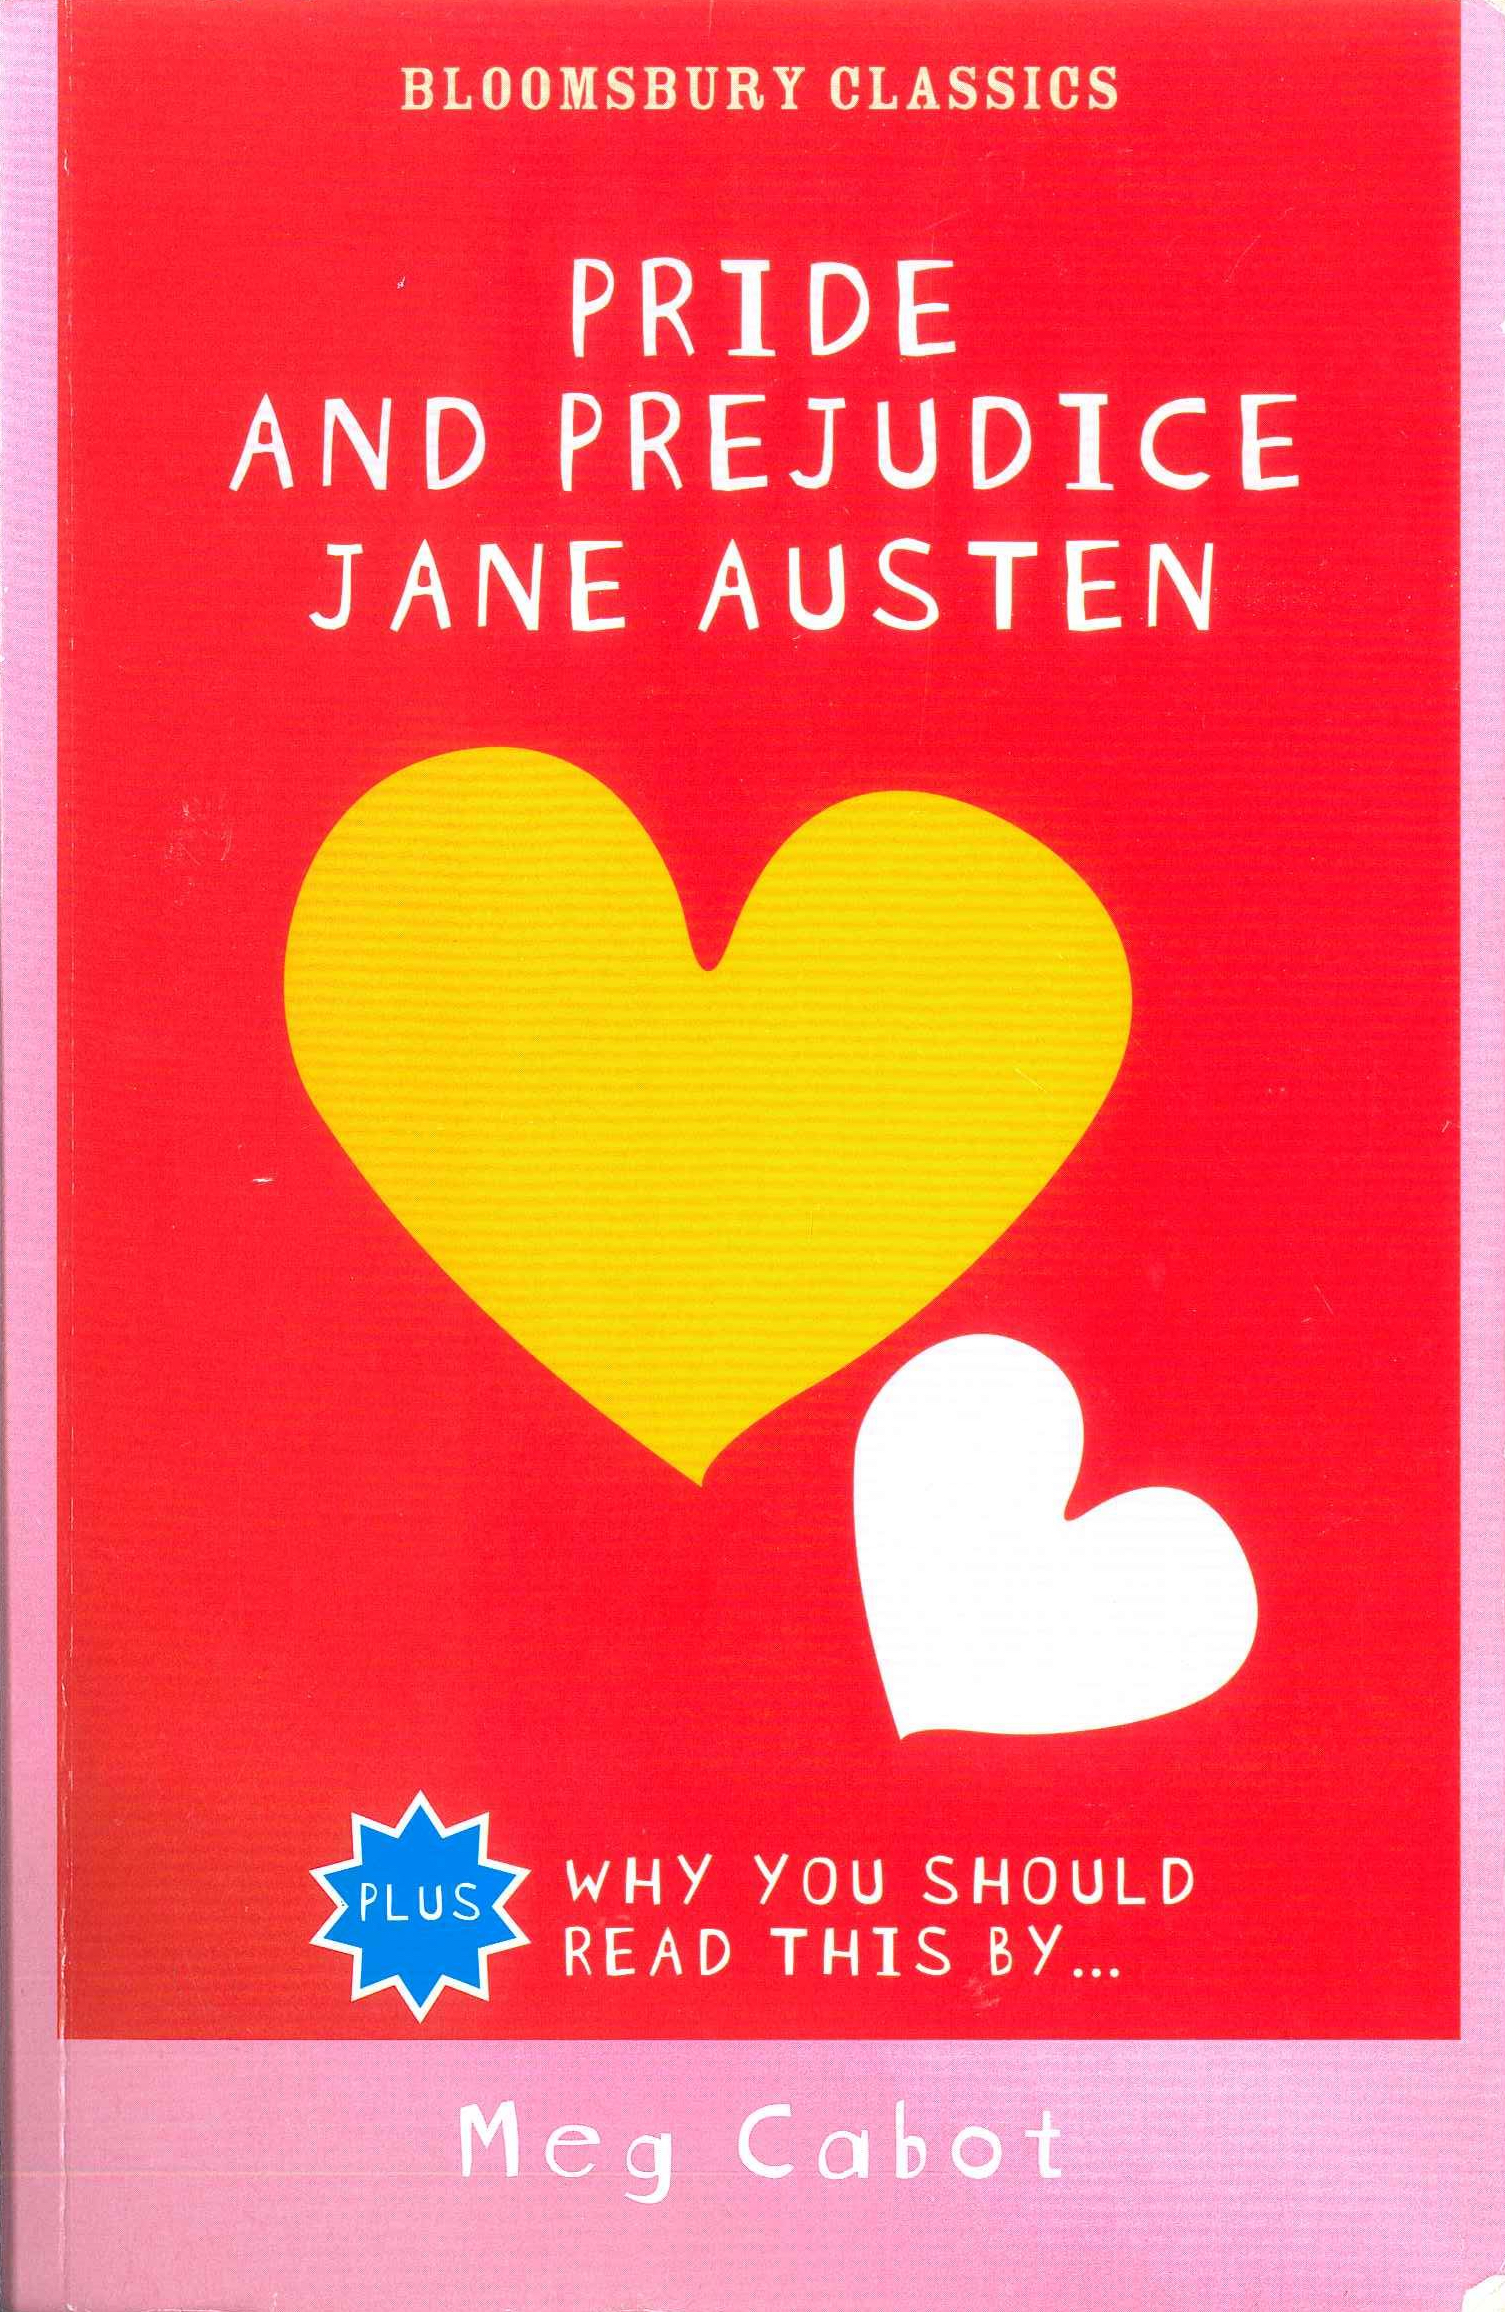 an analysis of the thoughts of marriage in the novel pride and prejudice by jane austen At social functions over subsequent weeks, however, mr darcy finds himself increasingly attracted to elizabeth's charm and intelligence jane's friendship with mr bingley also continues to burgeon, and jane pays a visit to the bingley mansion.